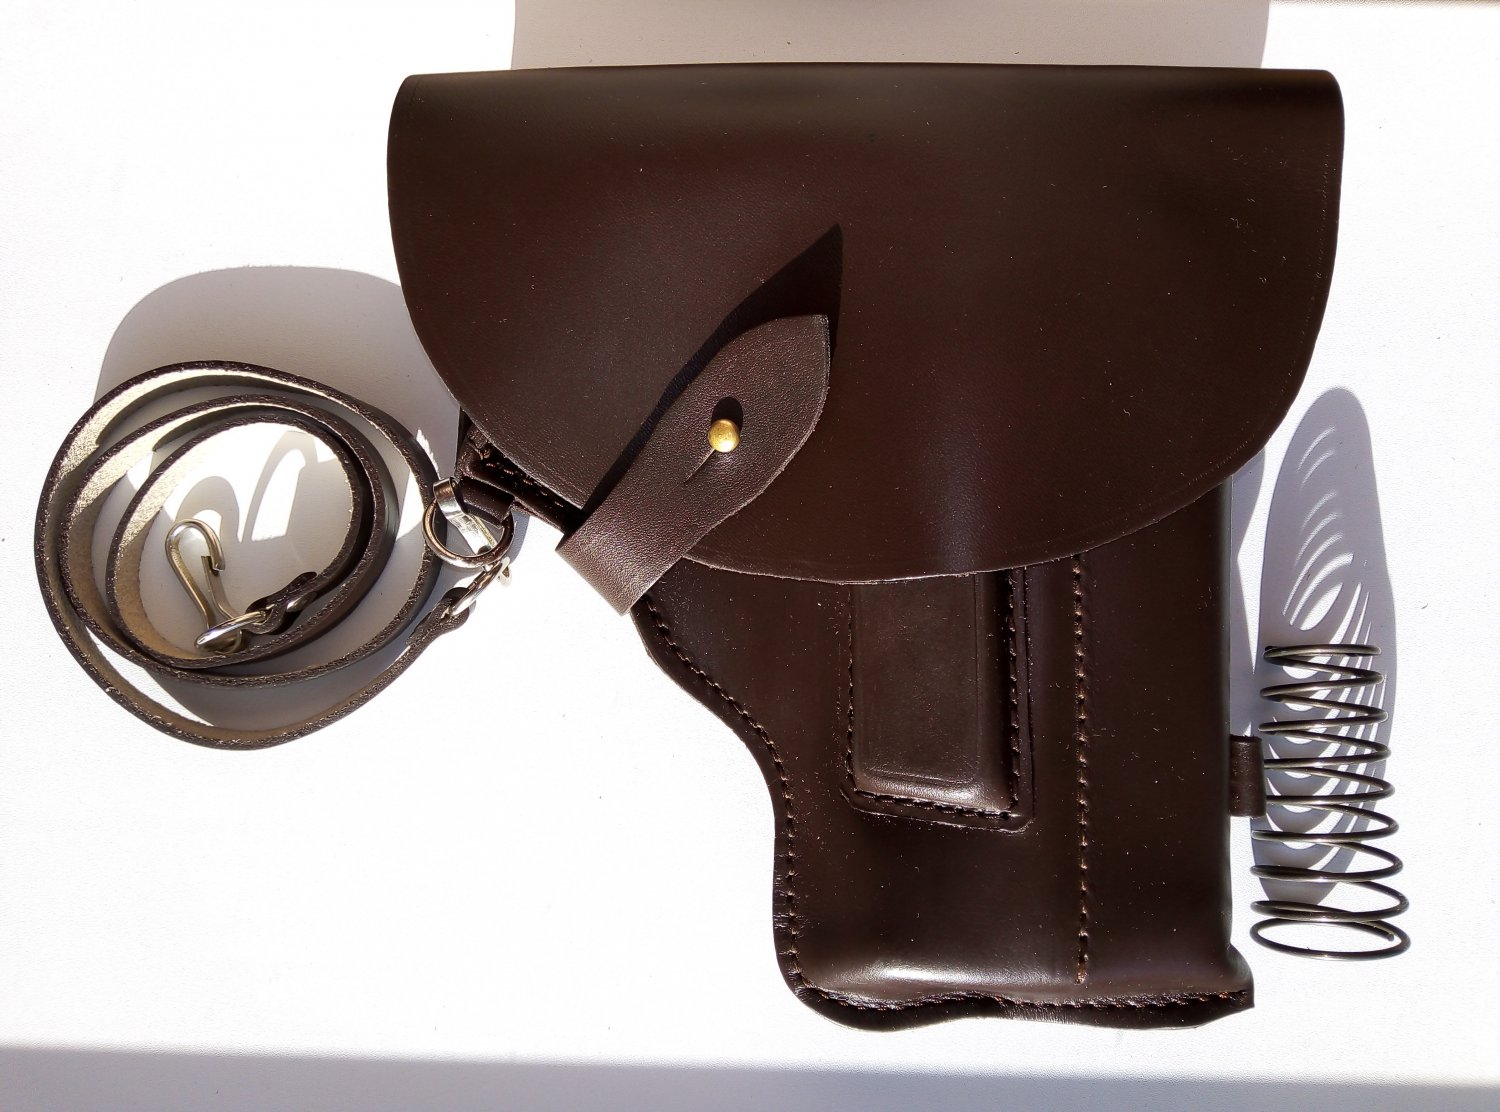 MP-654K holster leather parts Baikal with convenient compartment for the cylindrical nozzle.